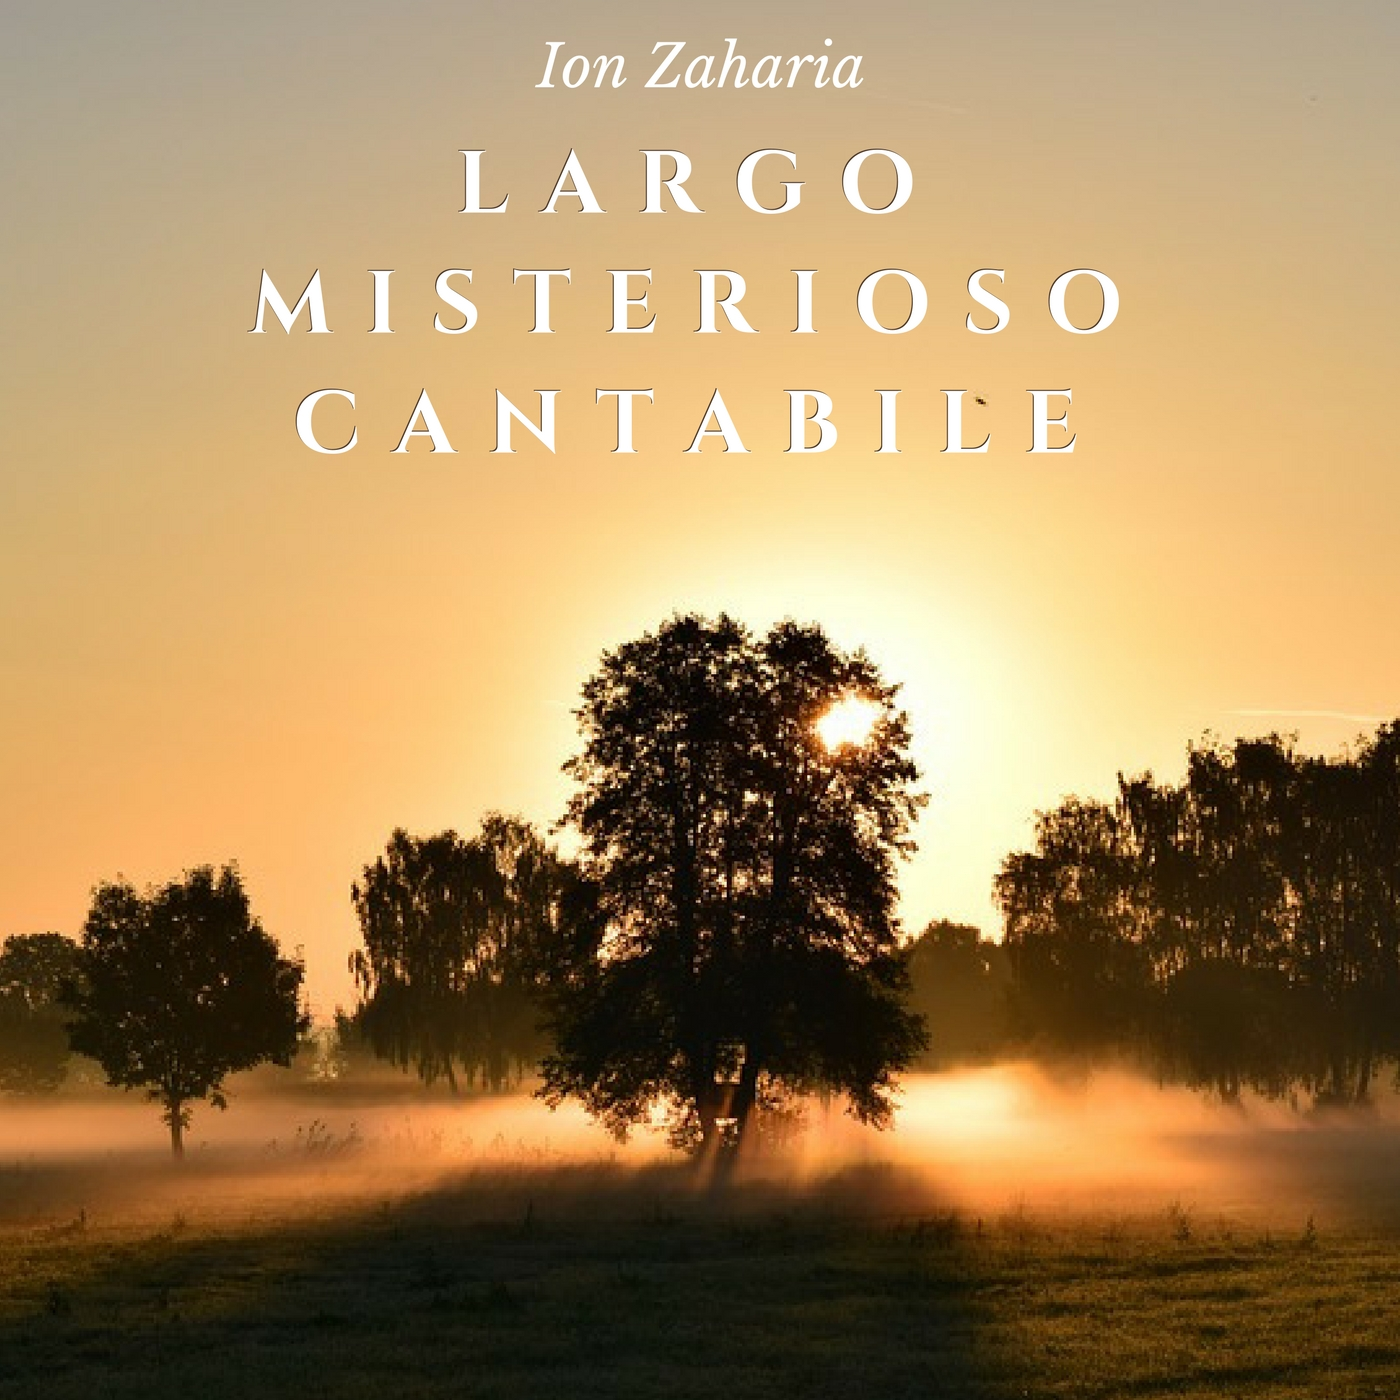 Largo Misterioso Cantabile